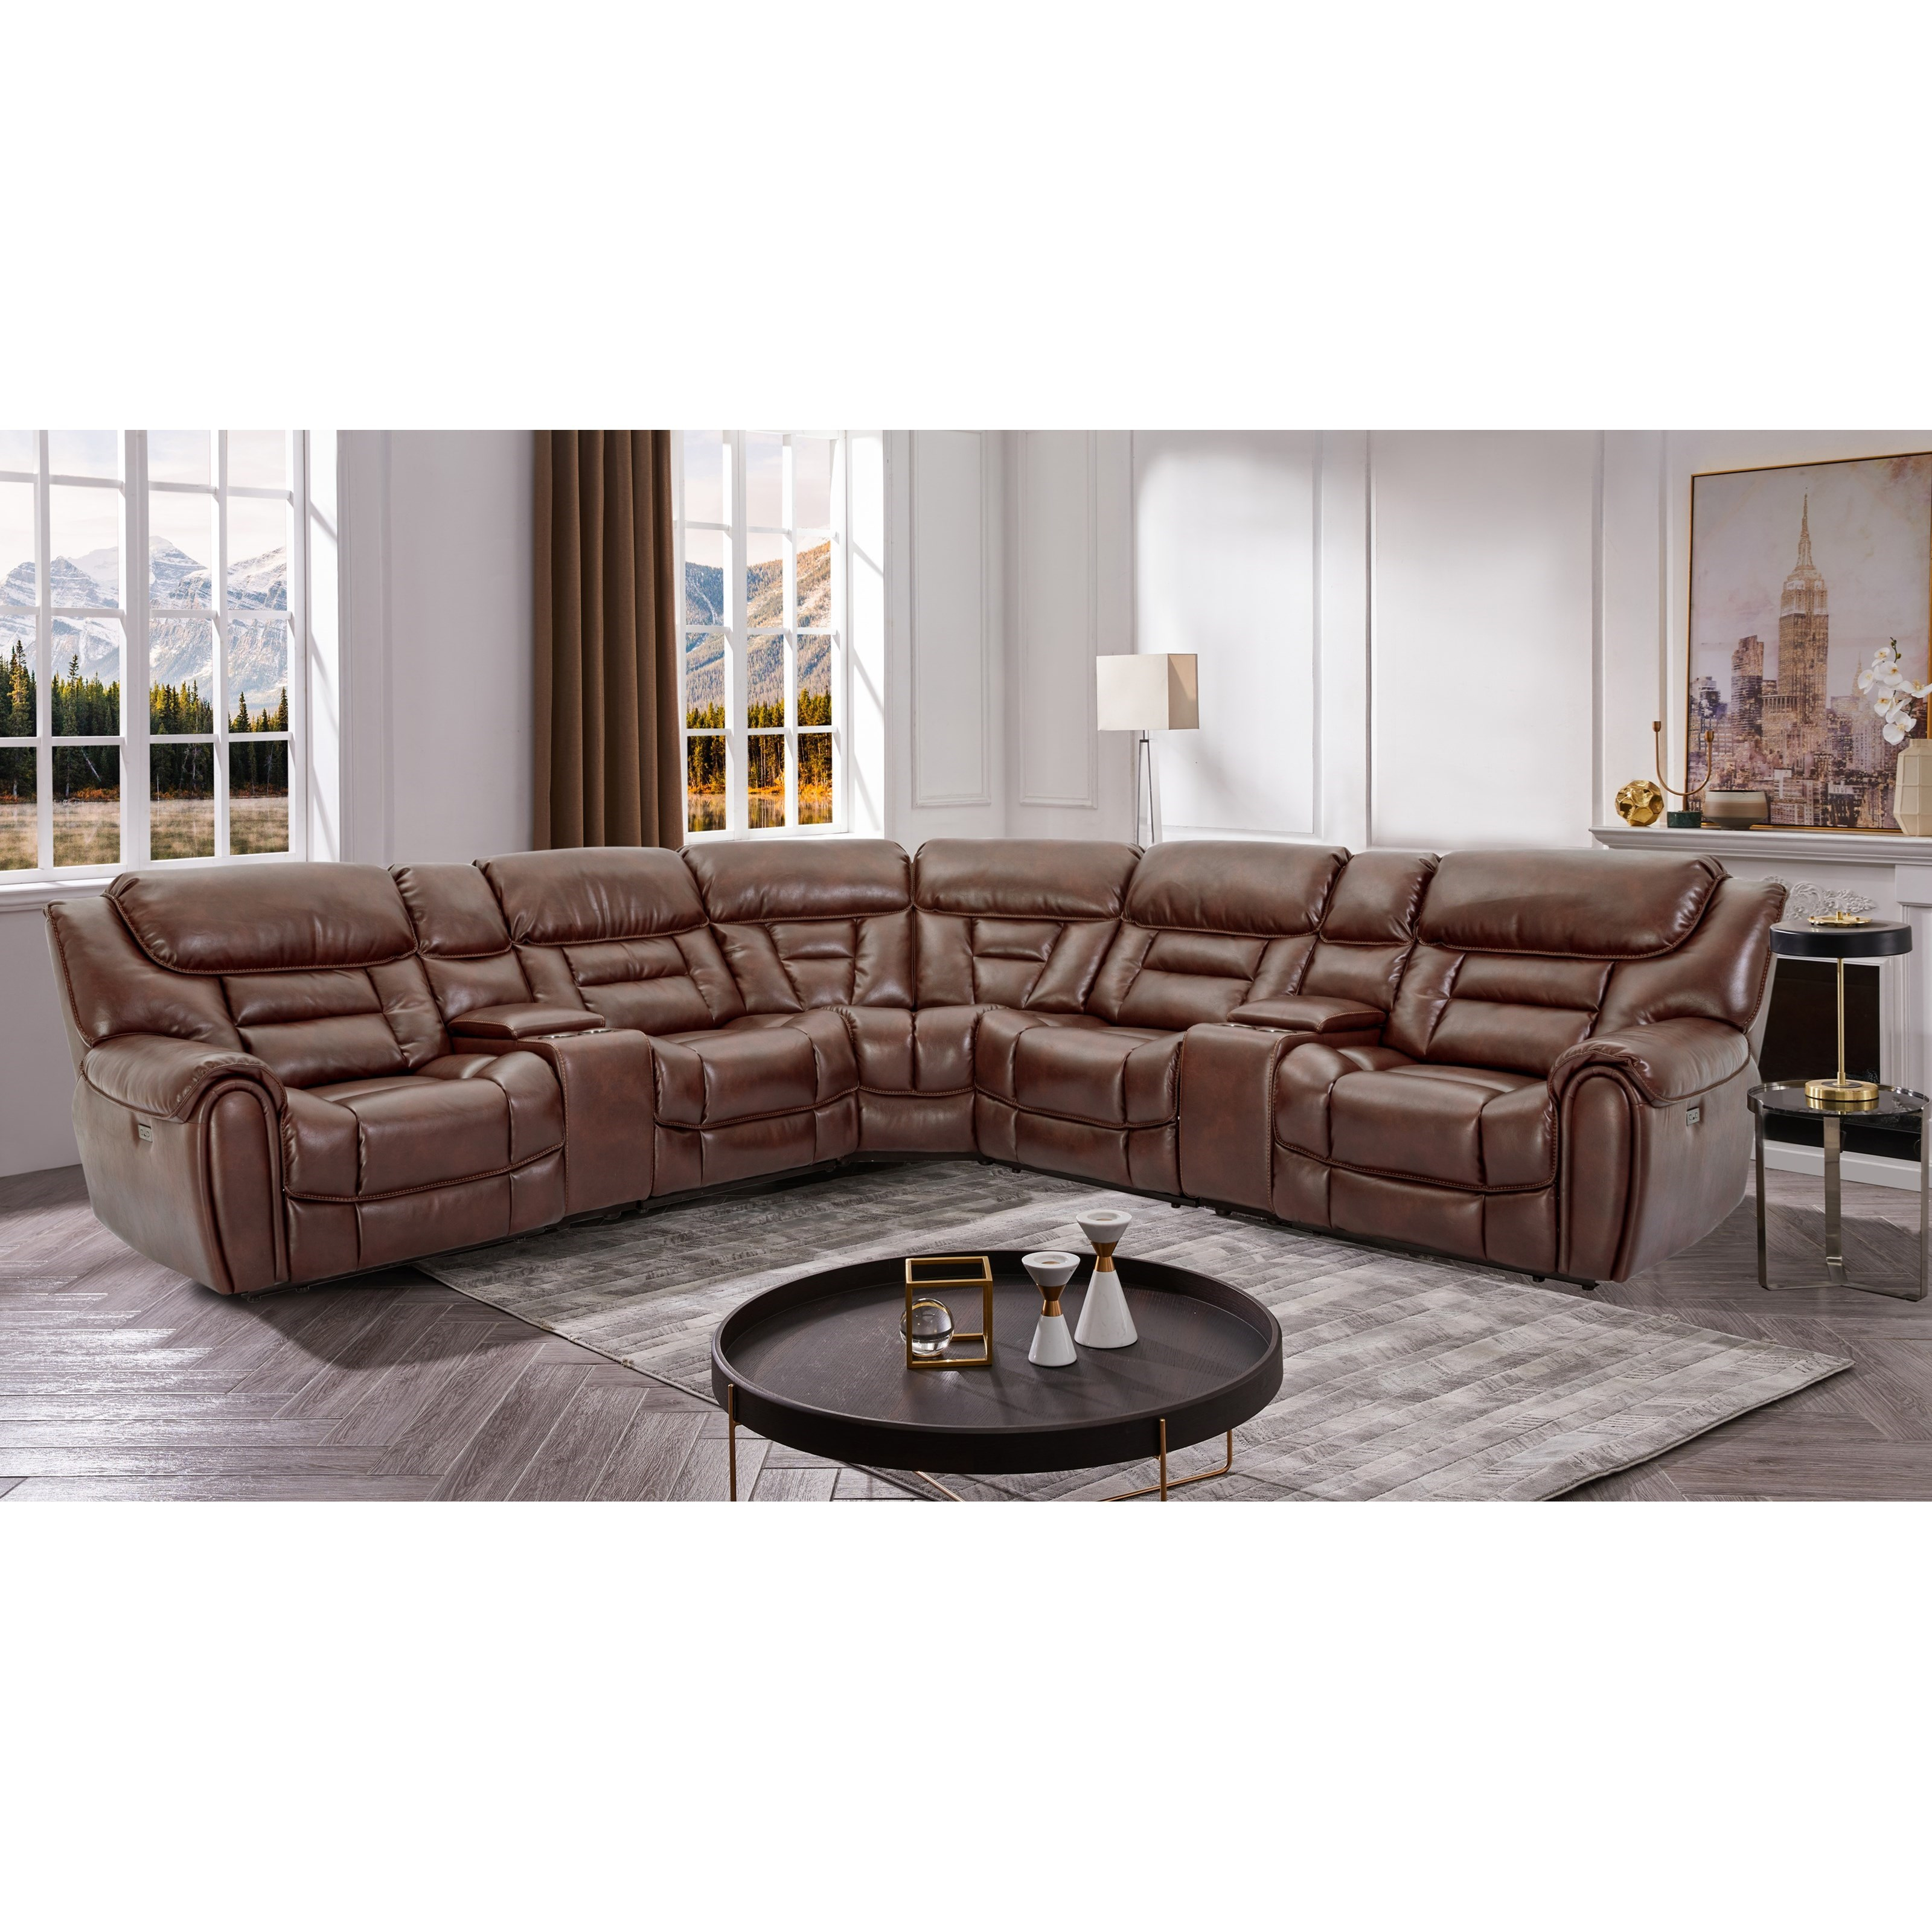 70039 7-Piece Power Reclining Sectional by Cheers at Lagniappe Home Store